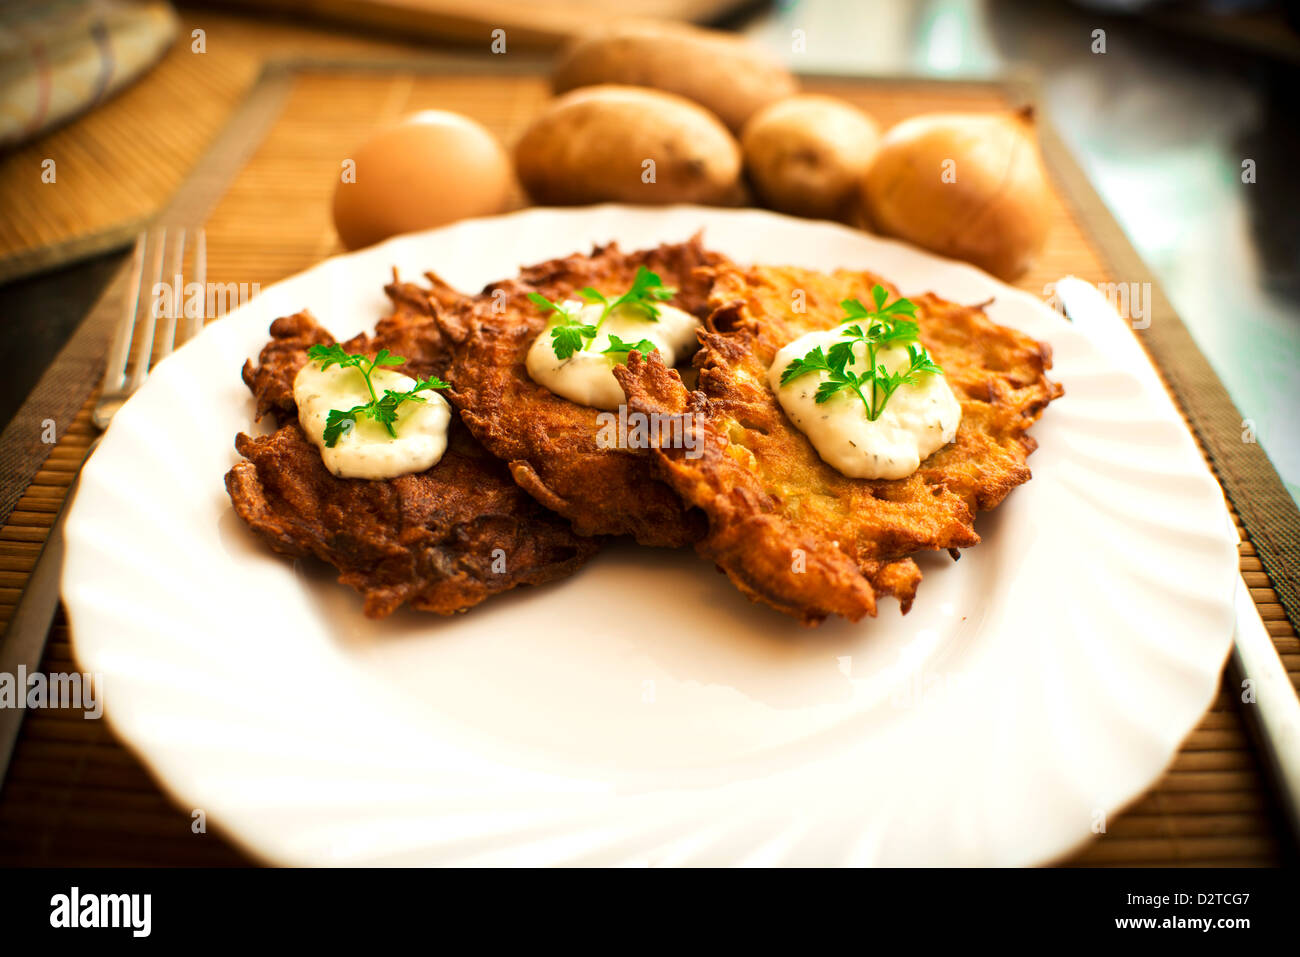 potato pancake with sour cream and parsley - Stock Image